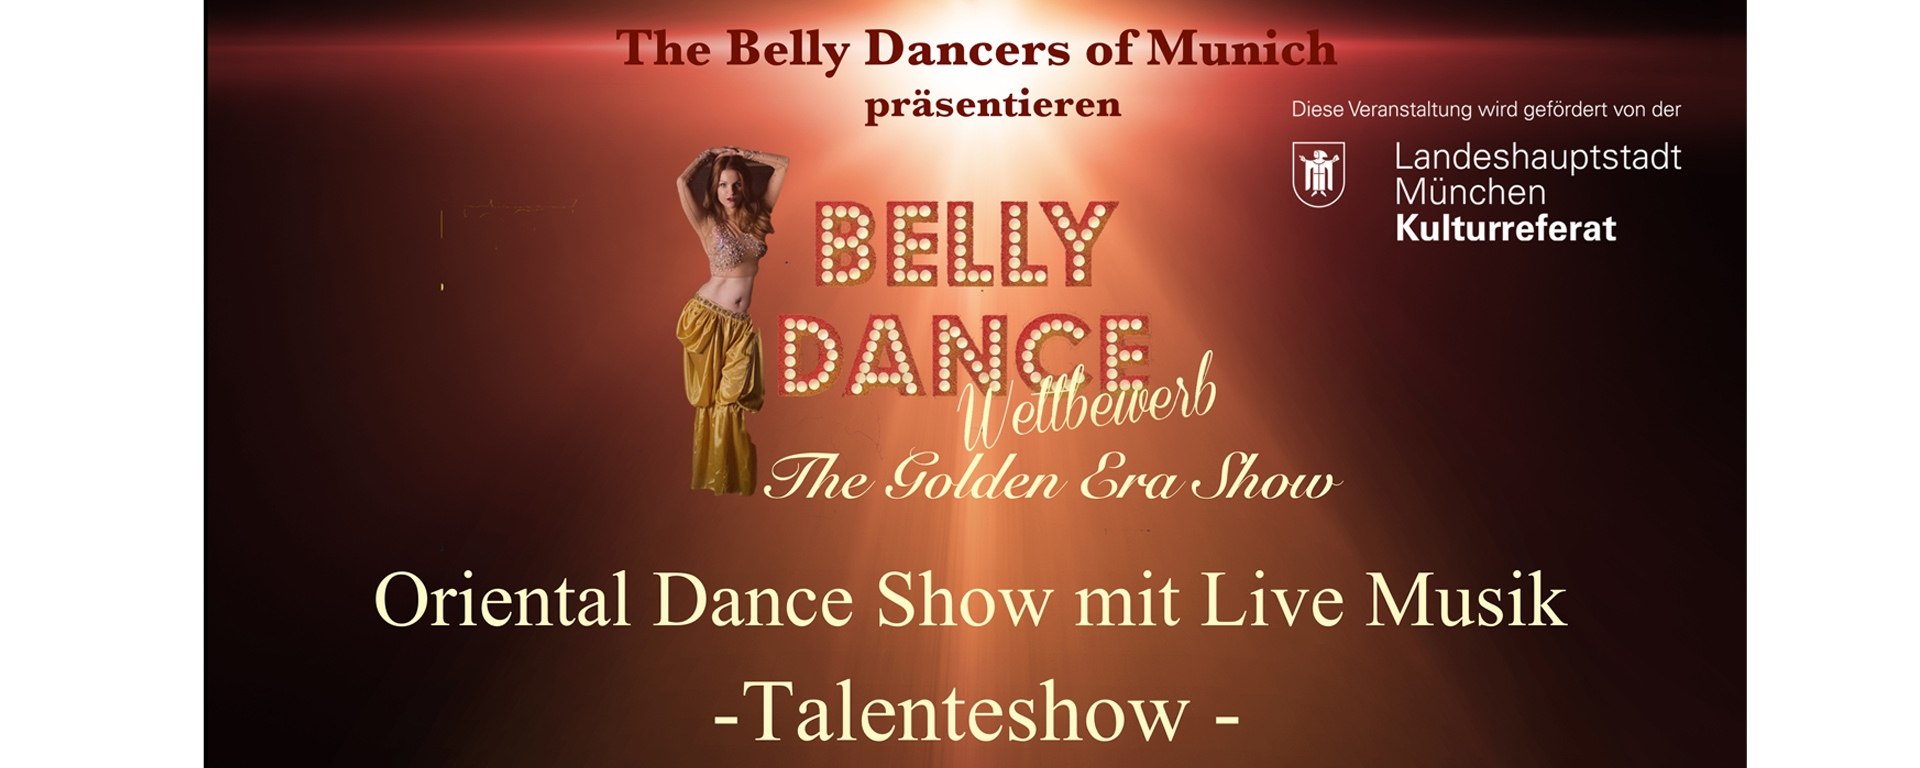 The Belly Dancers of Munich